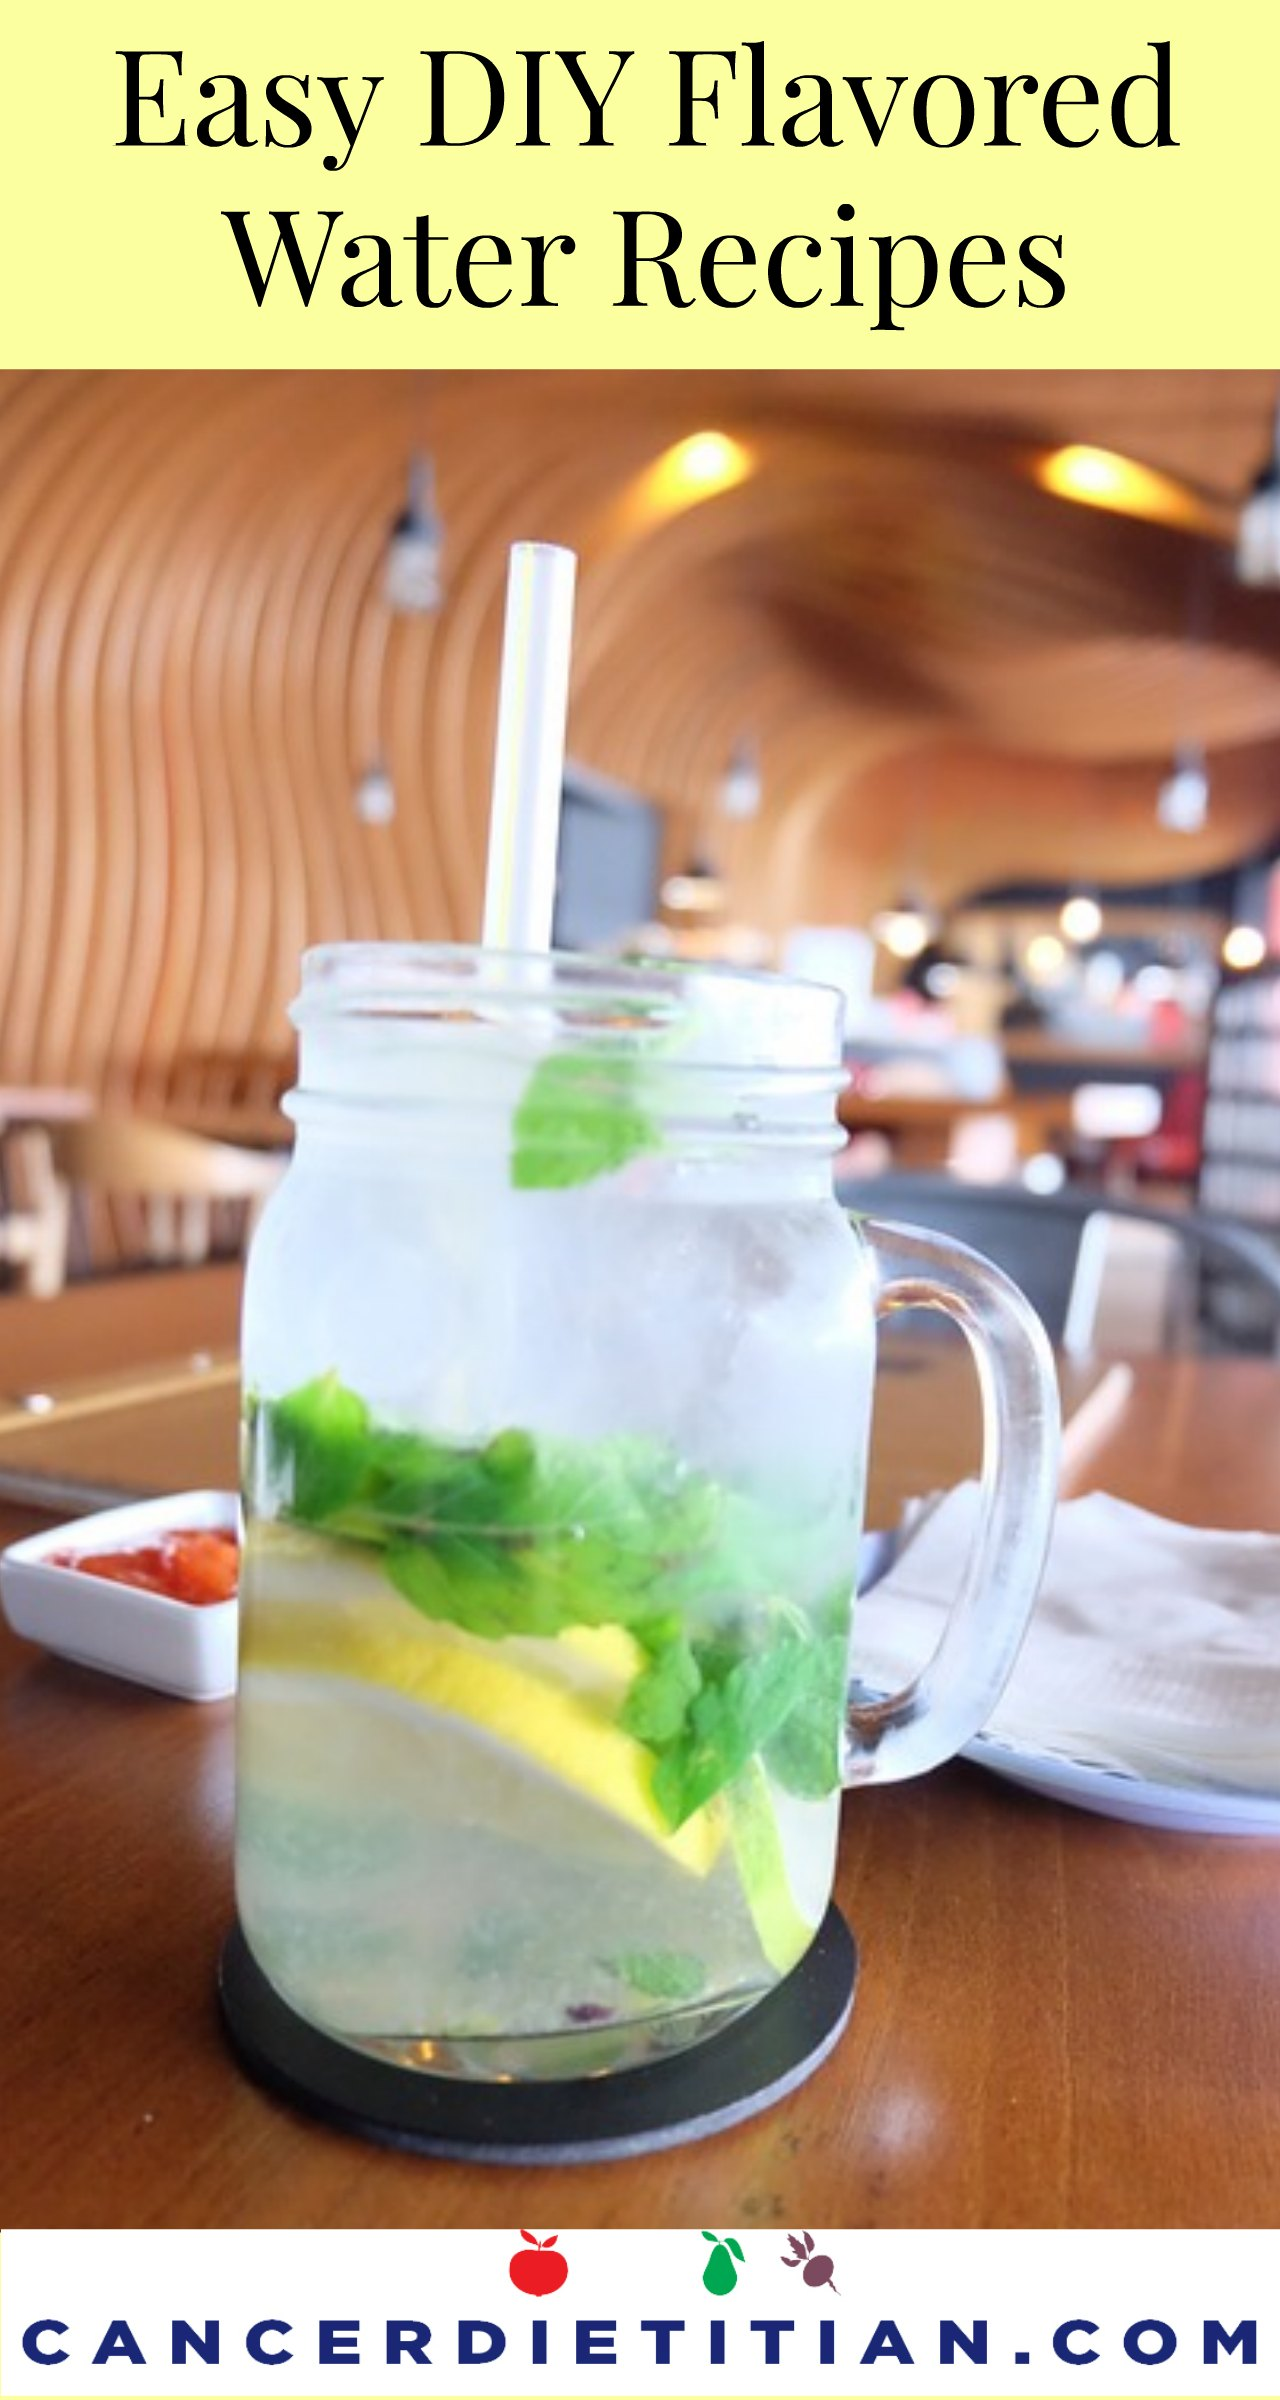 DIY Flavored Water Recipes